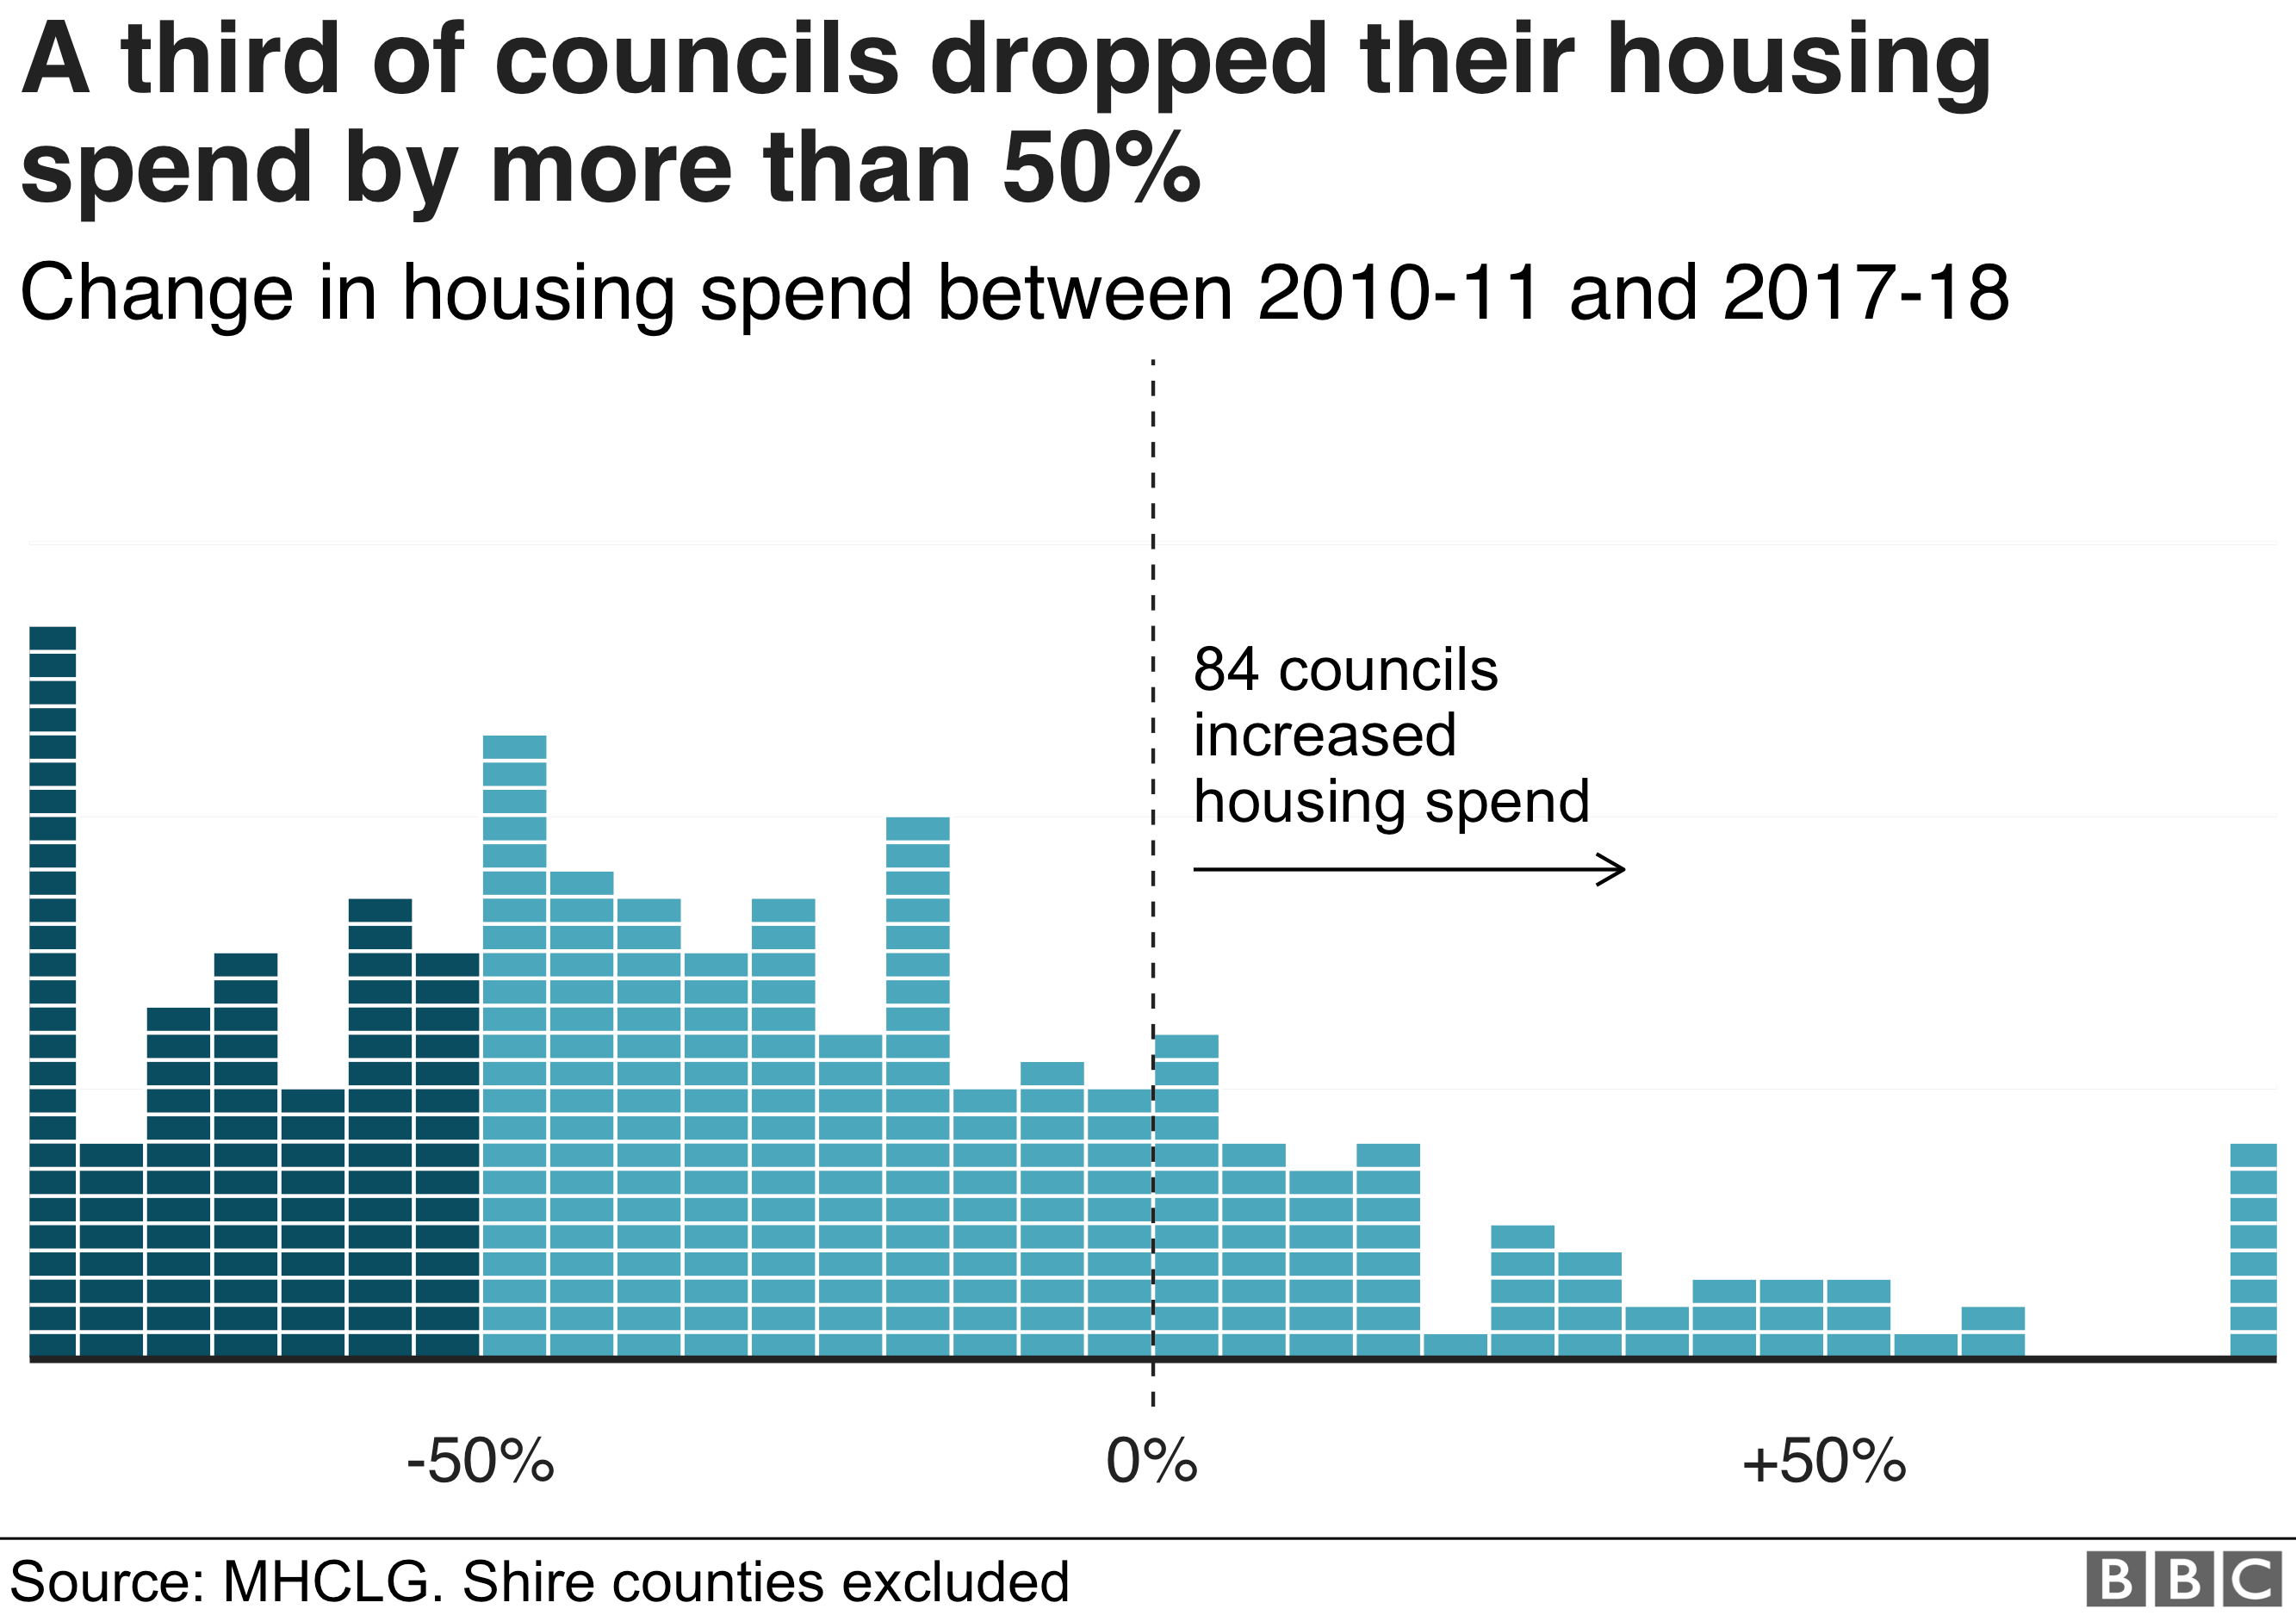 Chart showing that a third of councils have dropped their housing spend by half